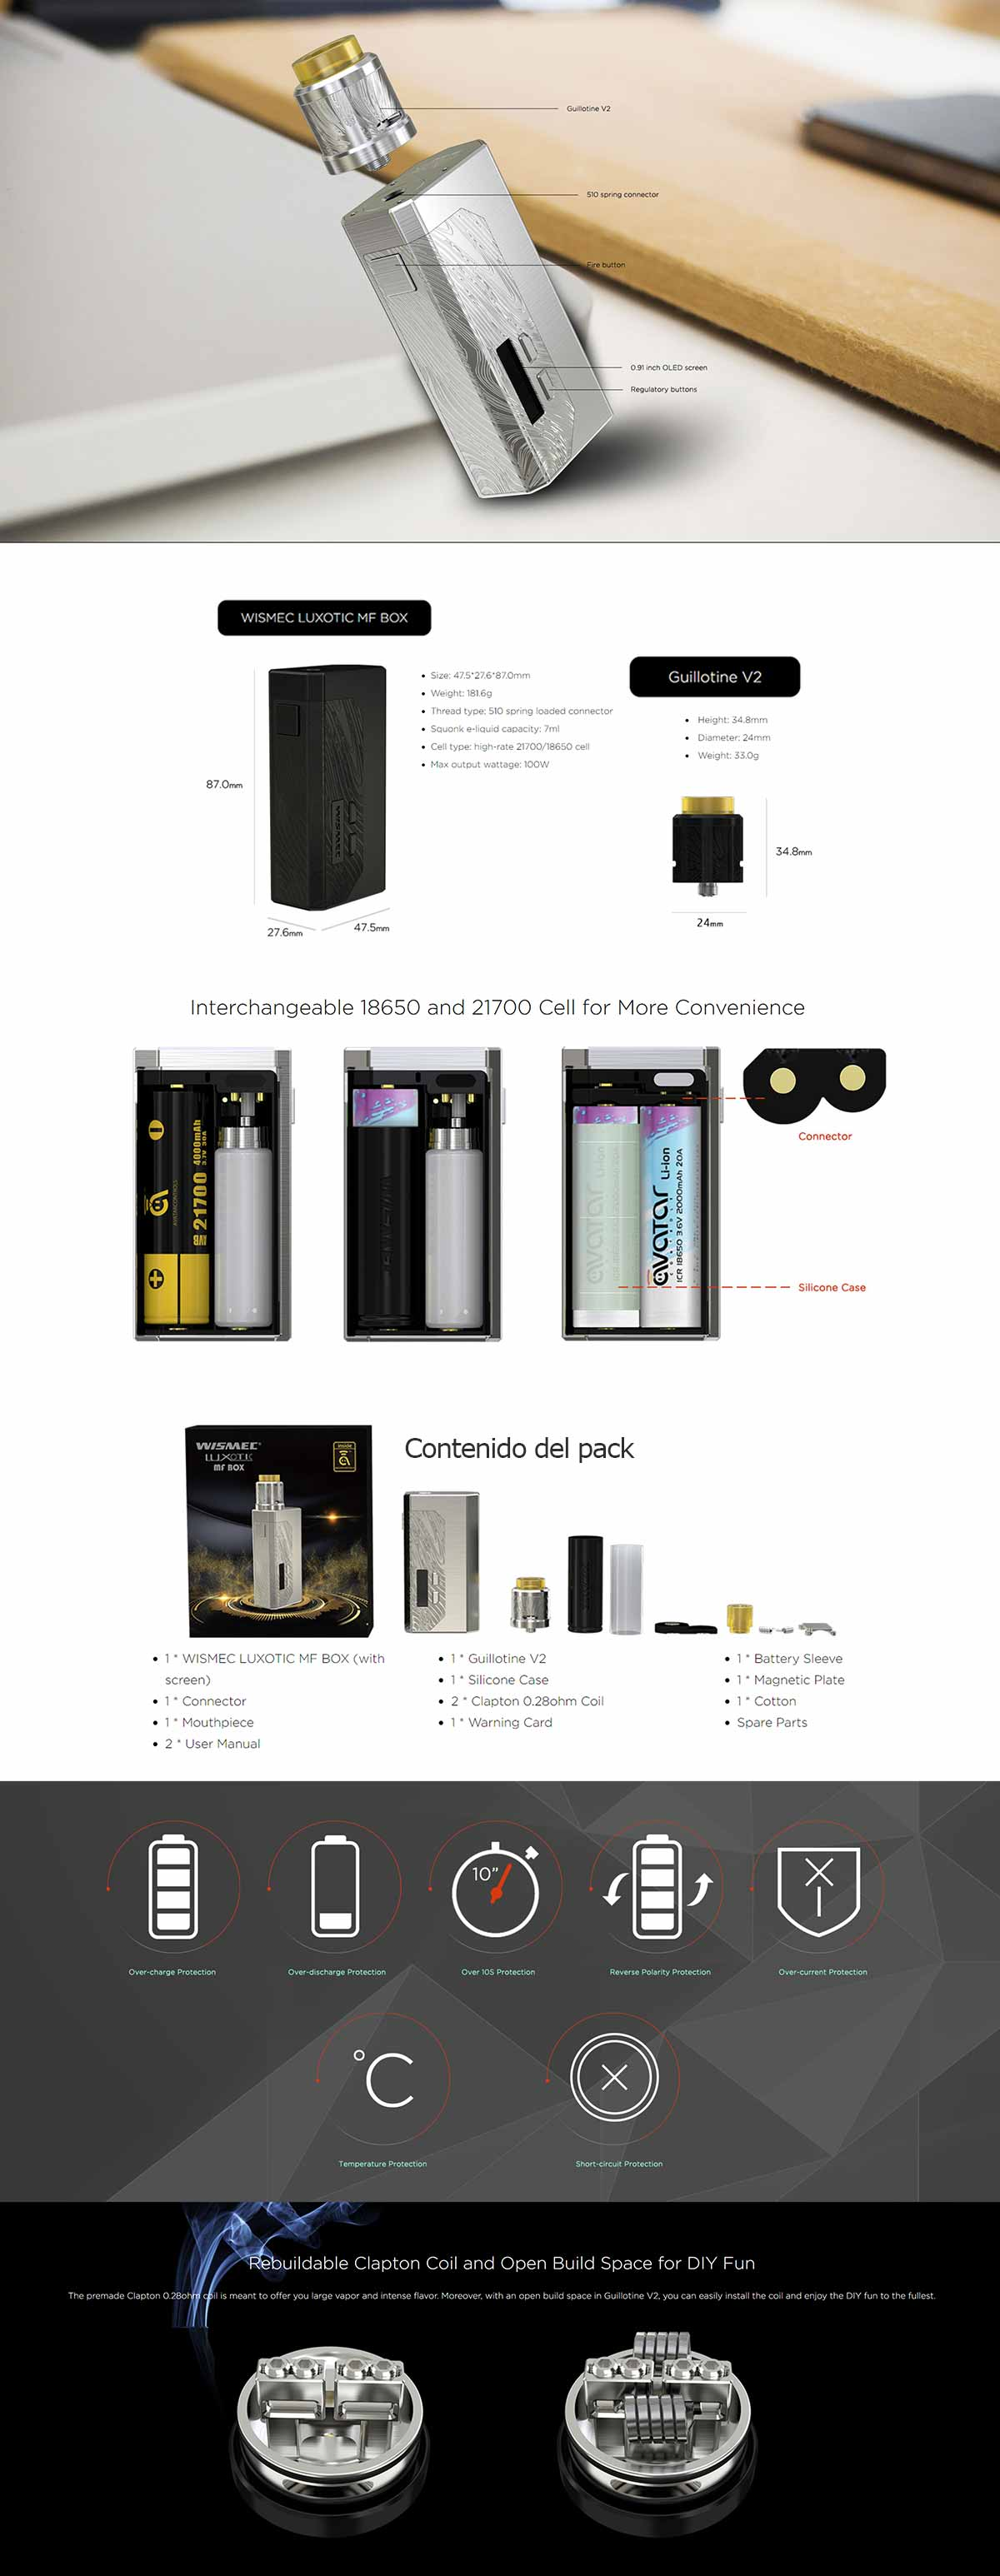 Wismec Luxotic MF kit - características